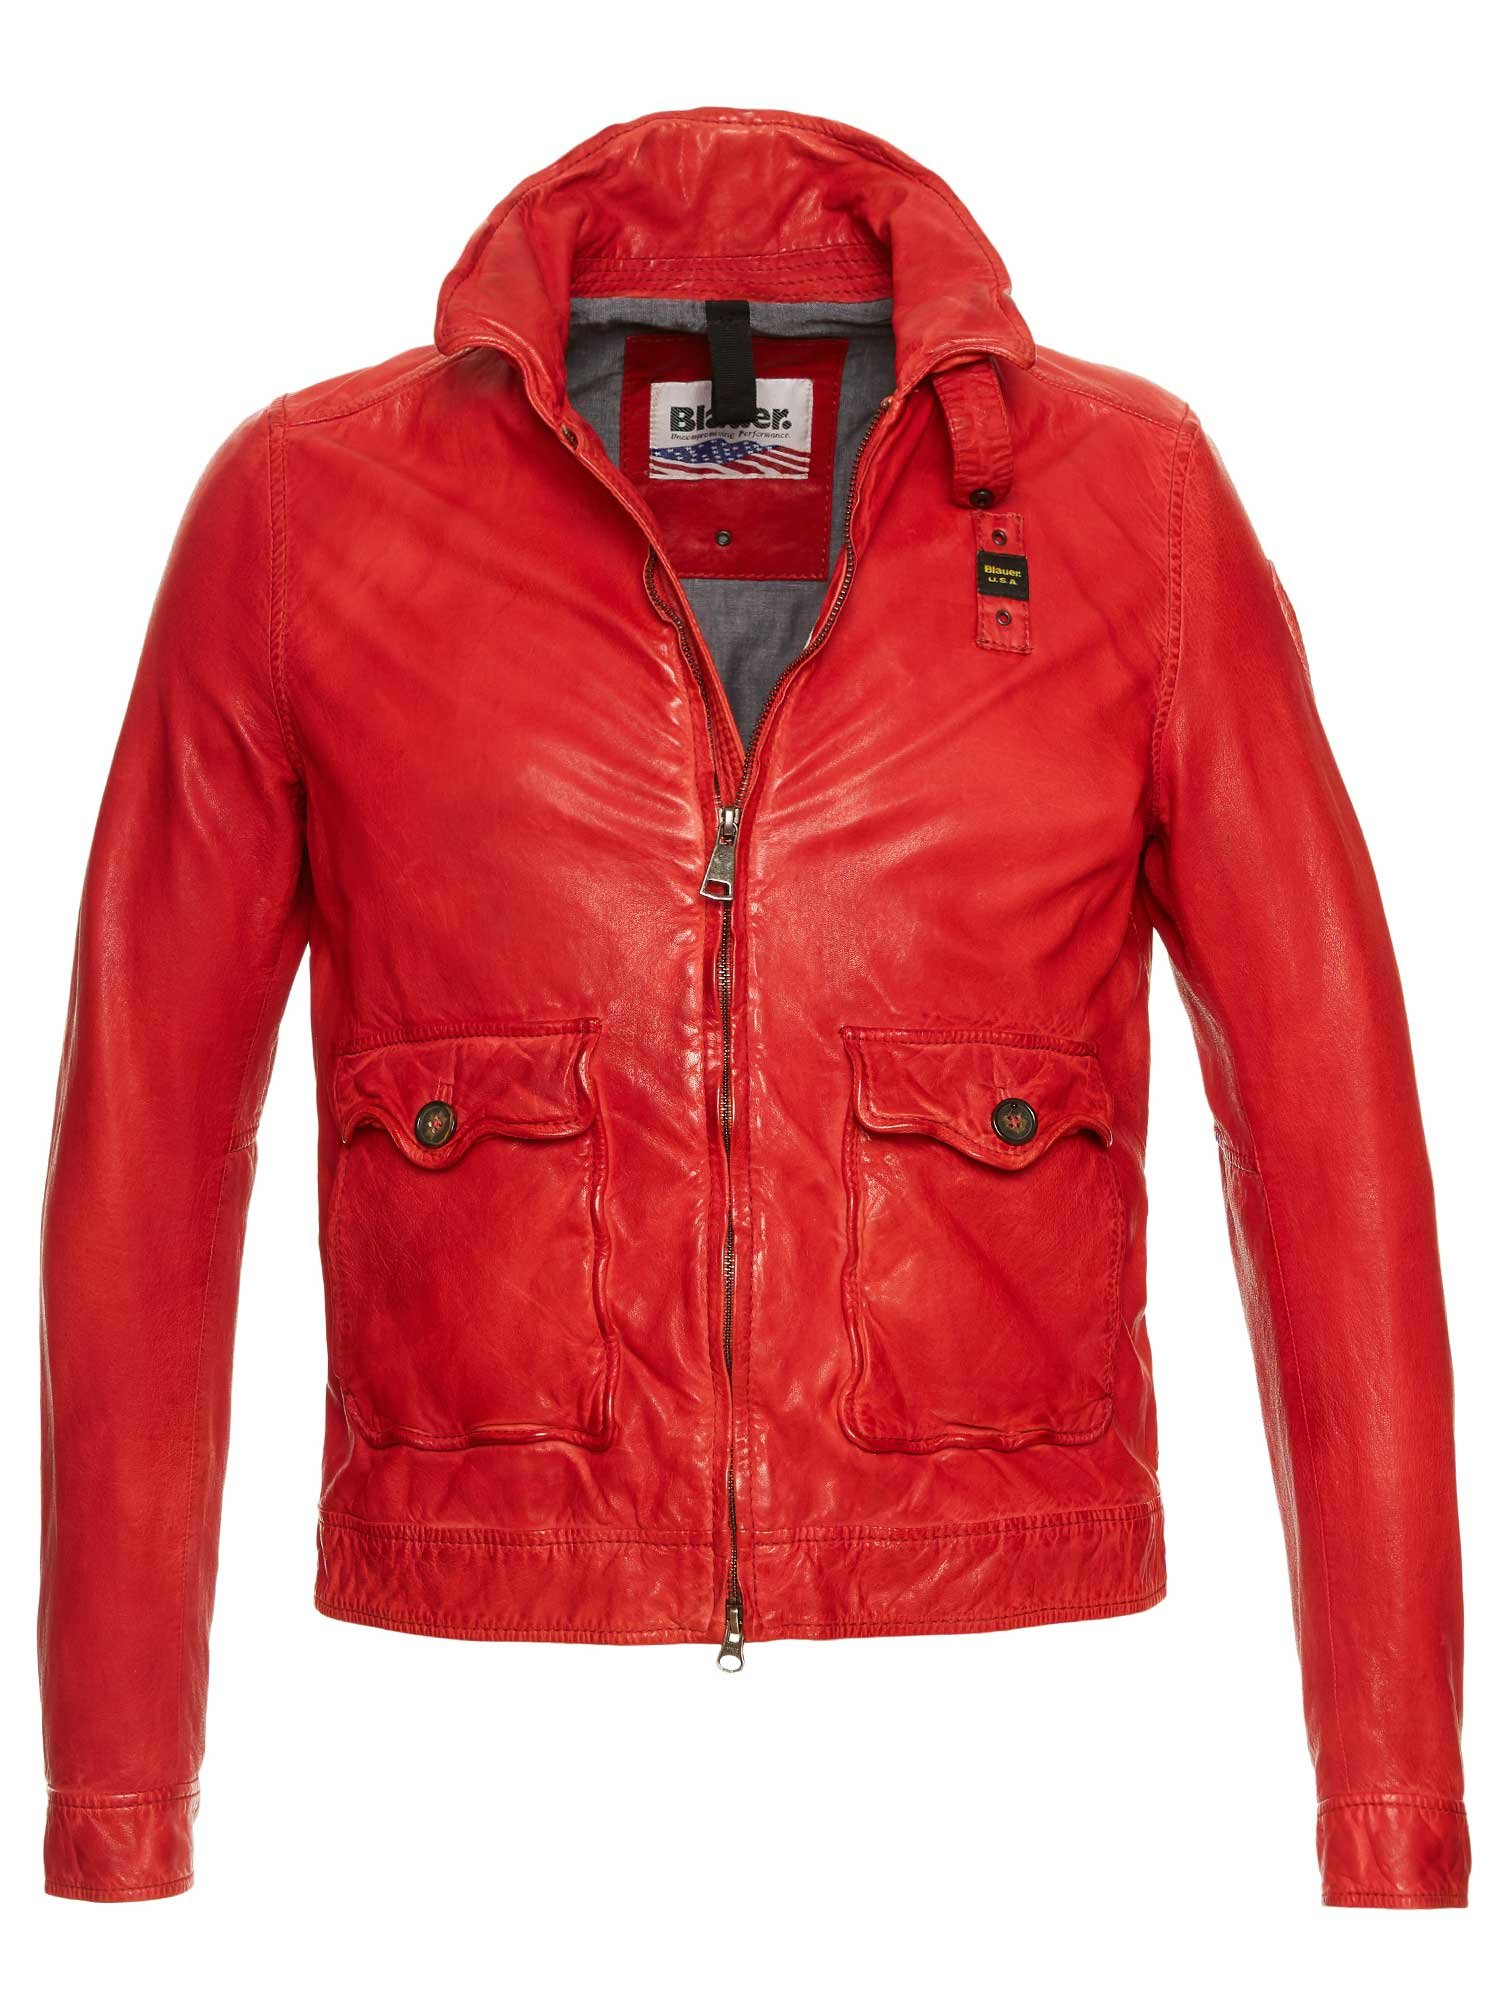 Blauer - ANTHONY COTTON LINED LEATHER JACKET - Red Bloode - Blauer